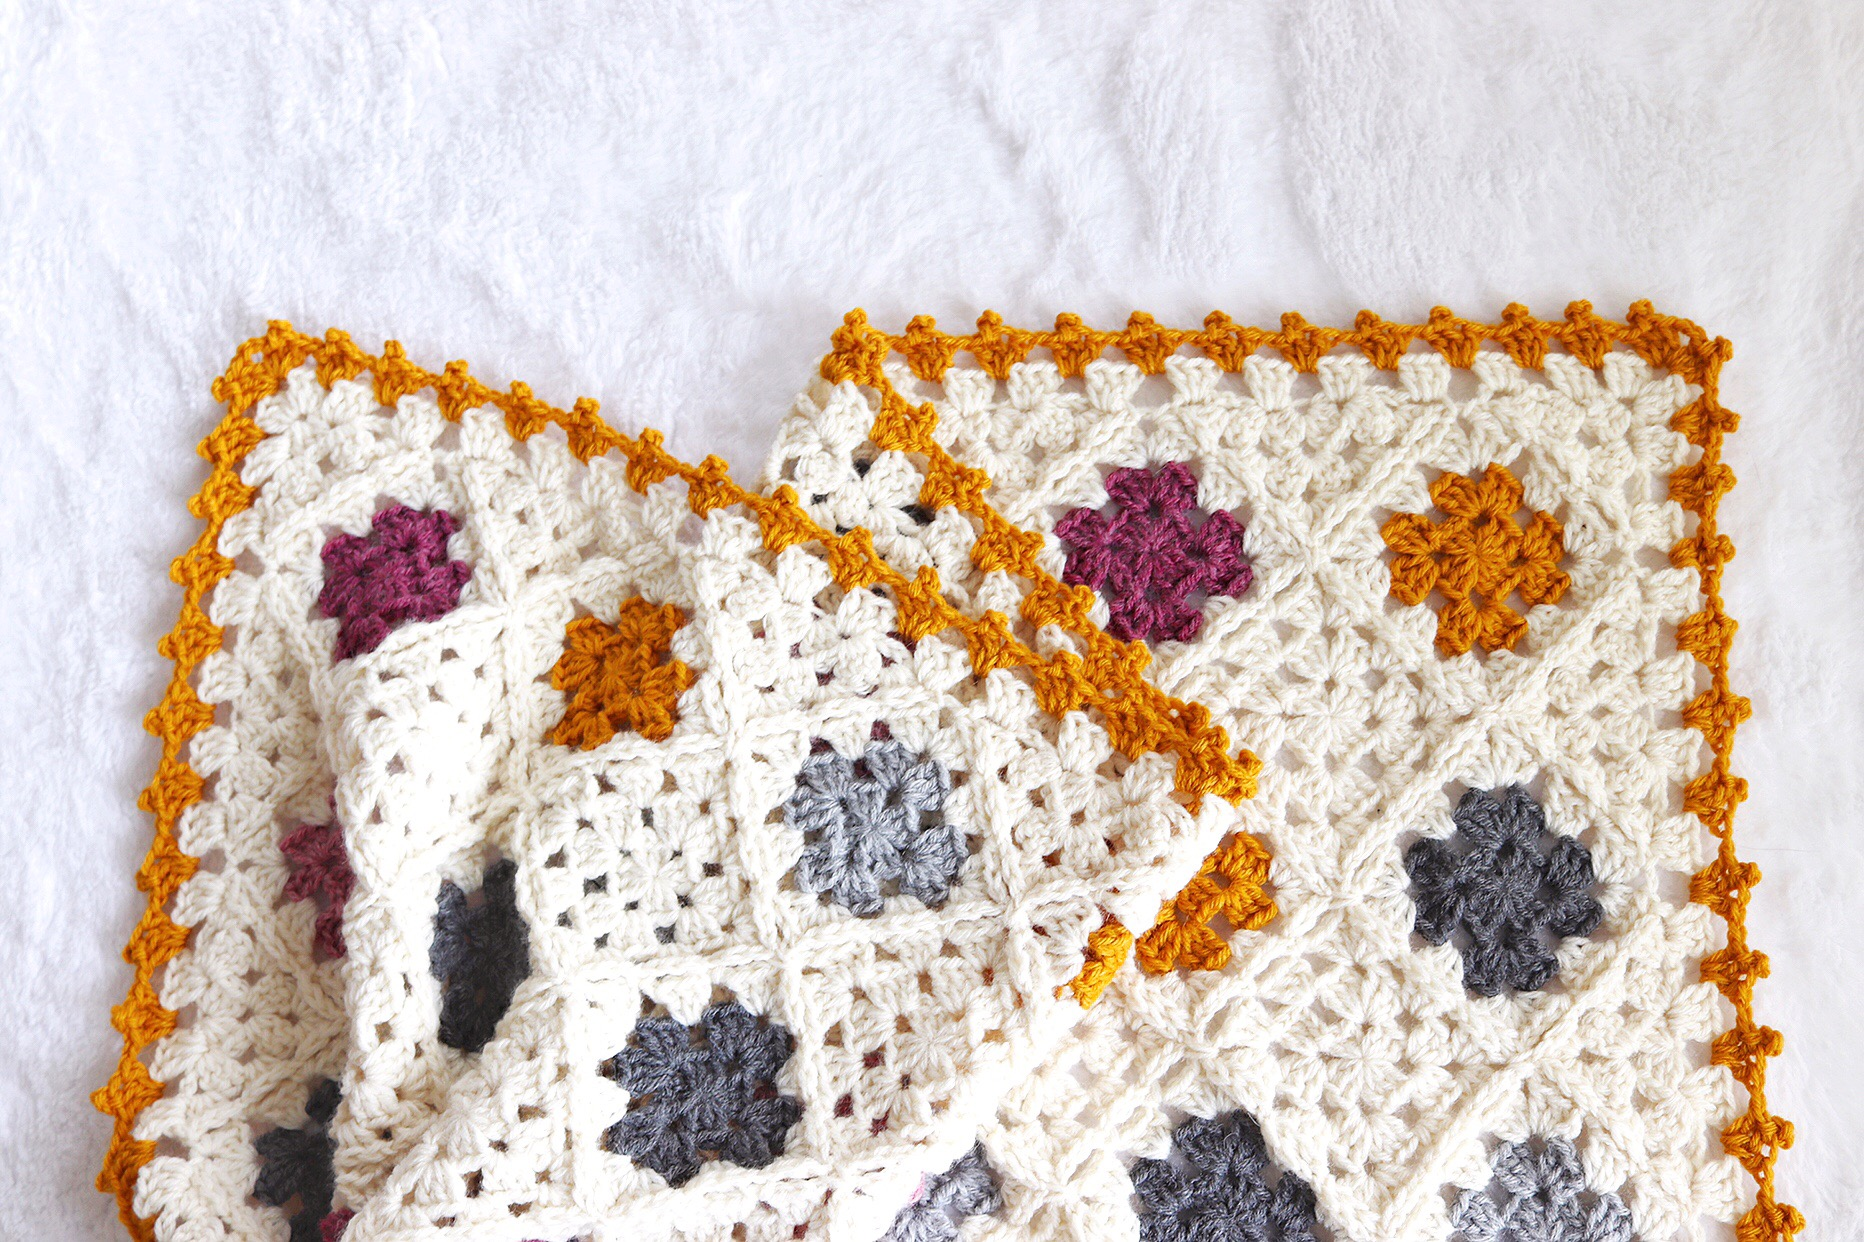 Tl Yarn Crafts The Sweet Granny Baby Blanket A Modern Granny Square Afghan Tl Yarn Crafts